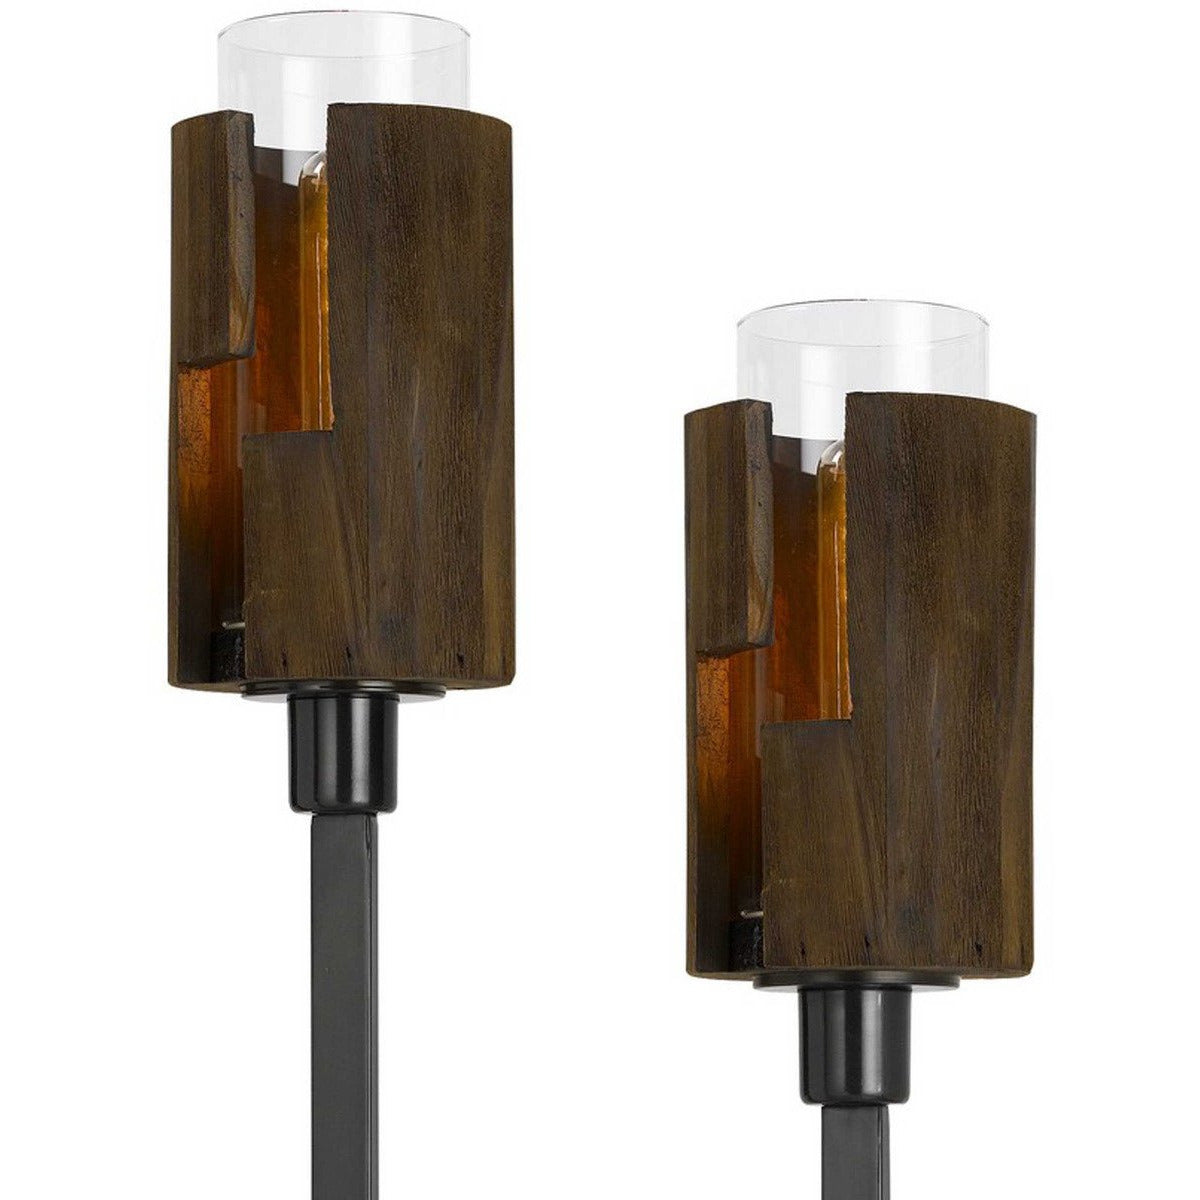 Floor Lamps - Sculpted Stalk Support Floor Lamp With 2 Wooden Frame Shade, Black